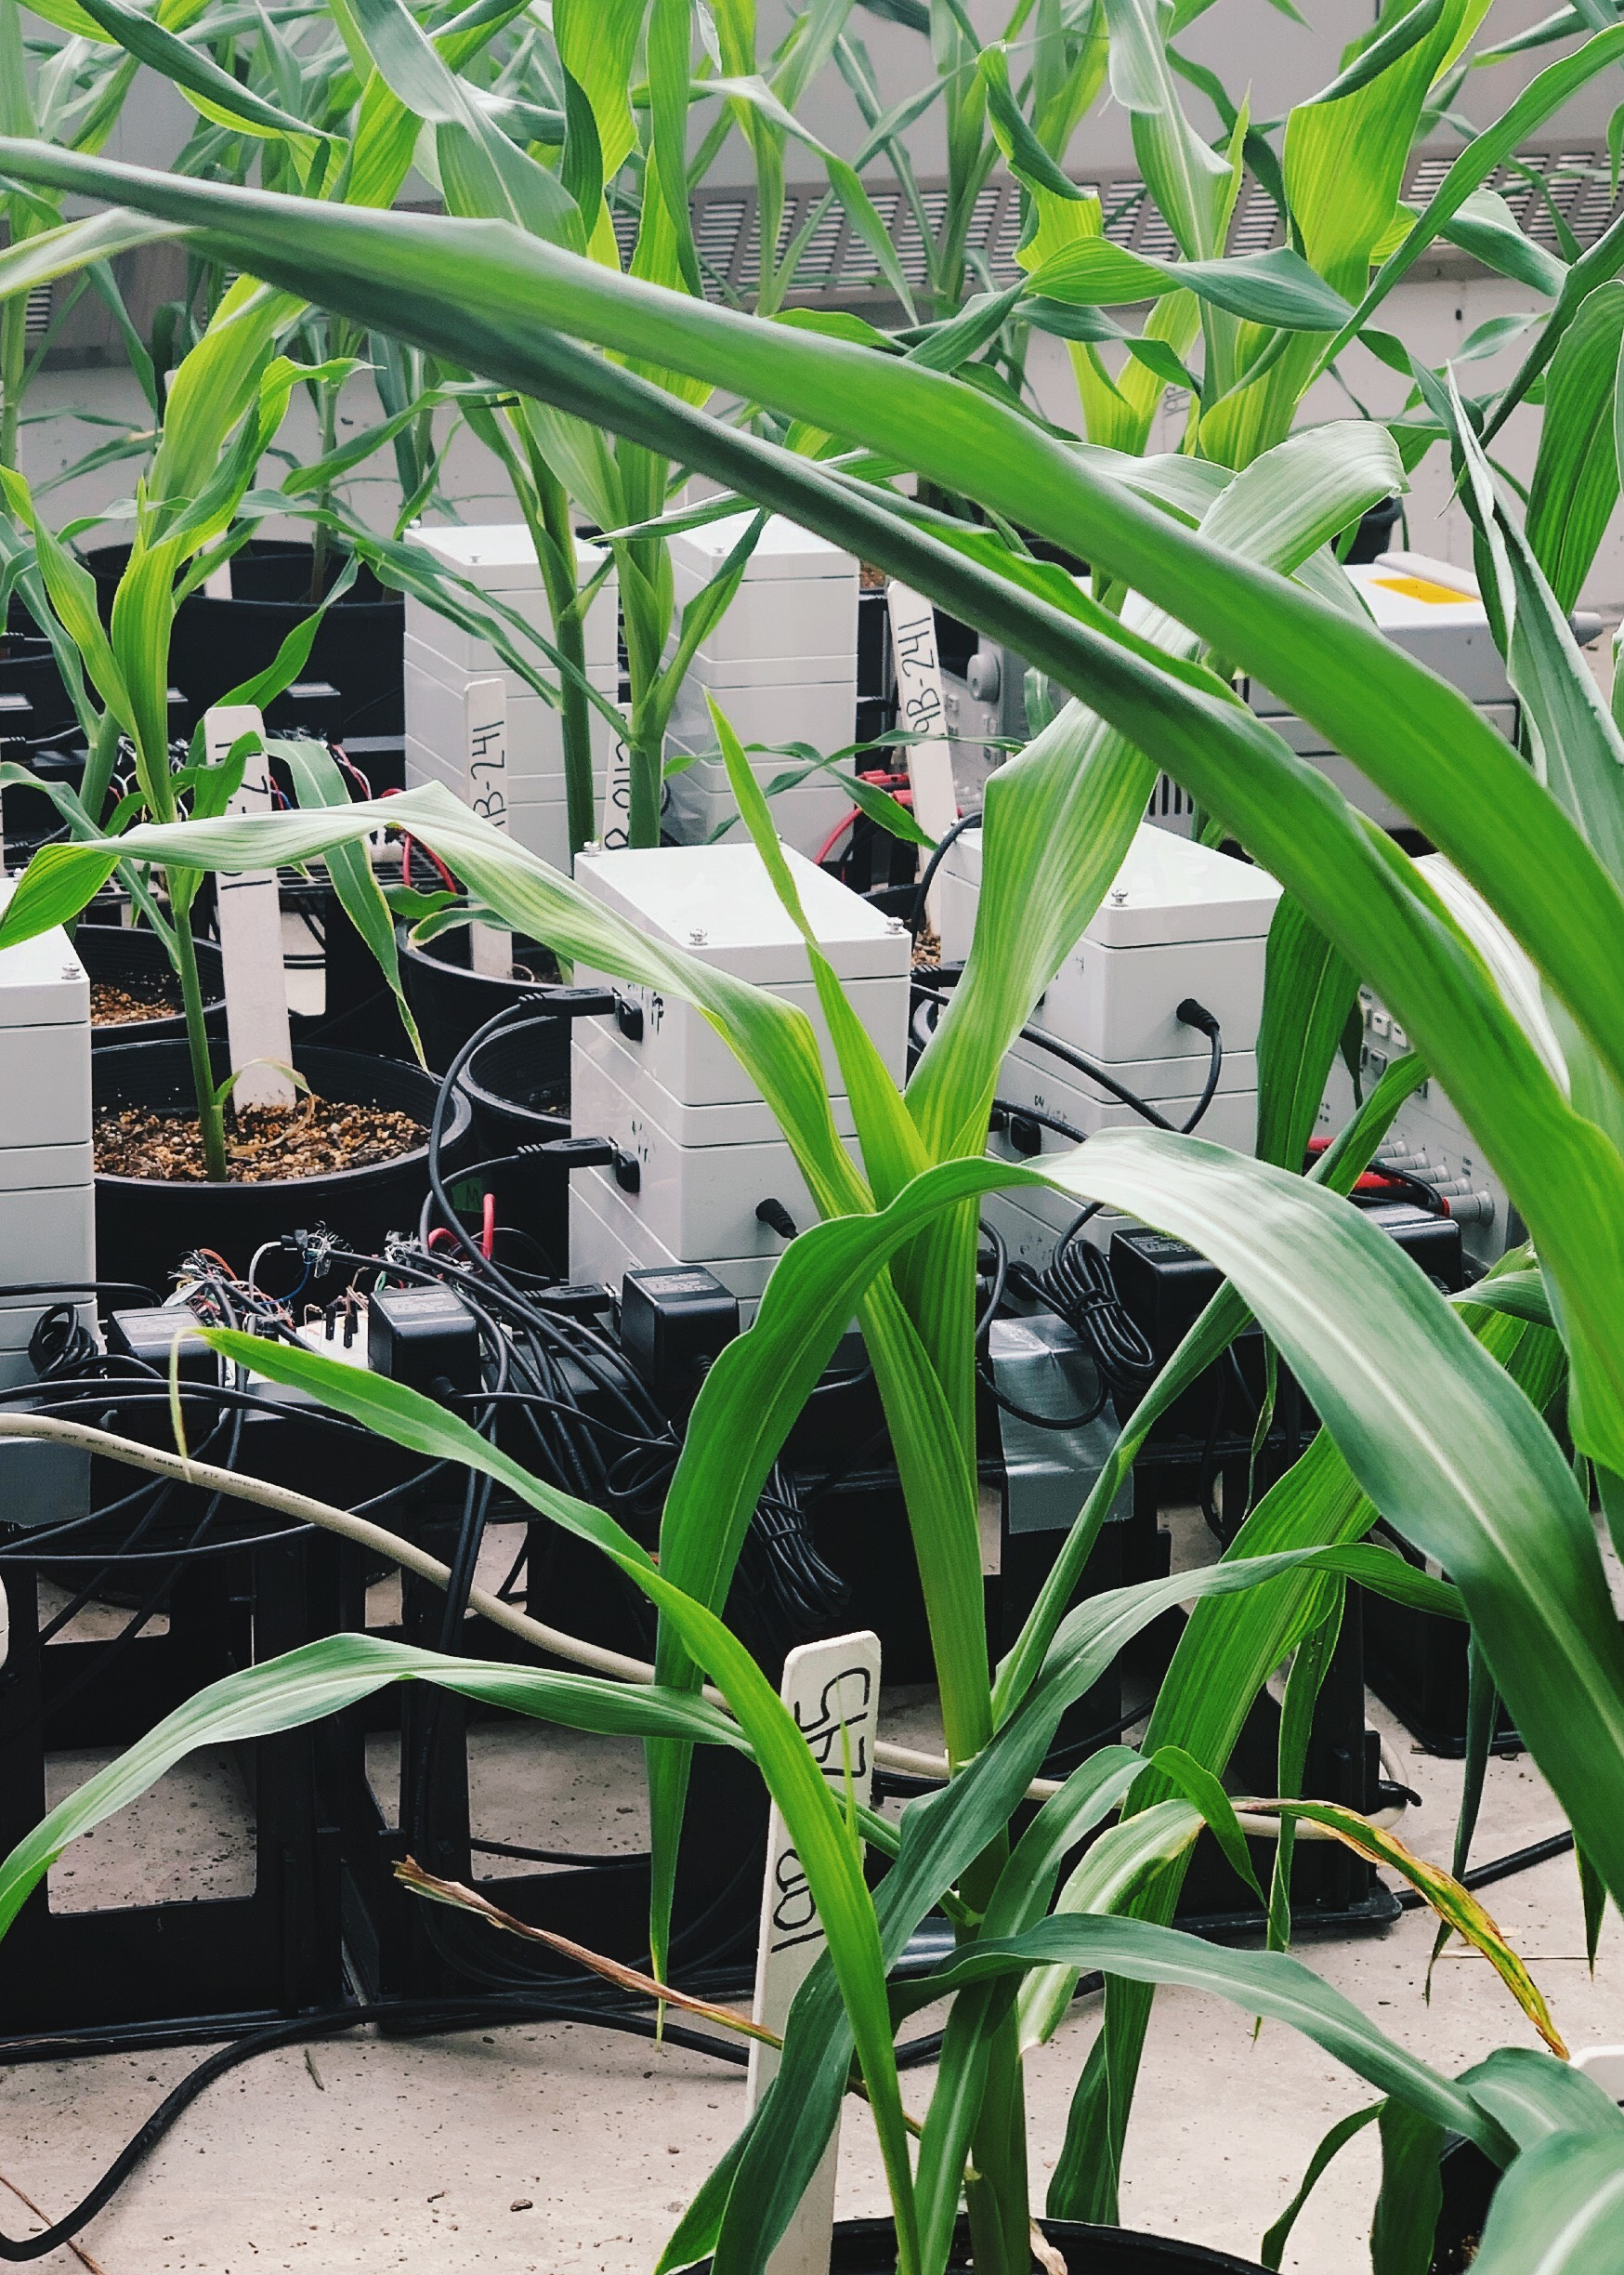 Image of corn connected to electronic sensors at Iowa State's Plant Sciences Institute.